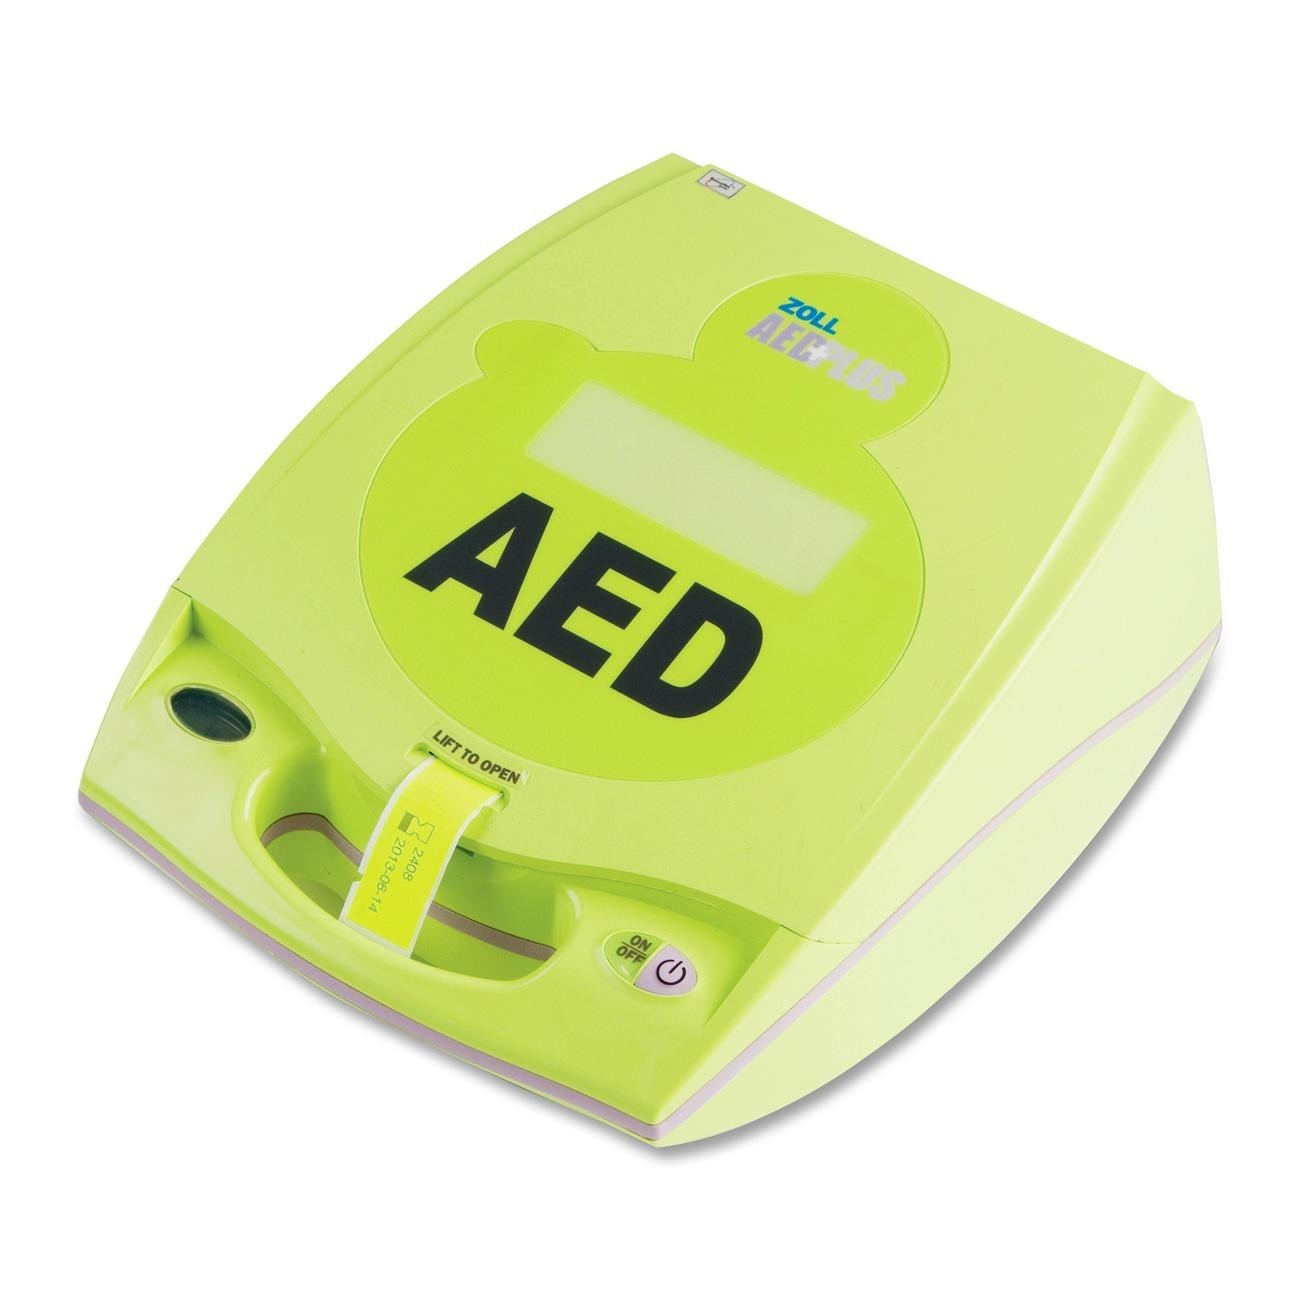 Best Defibrillators For Offices 2020